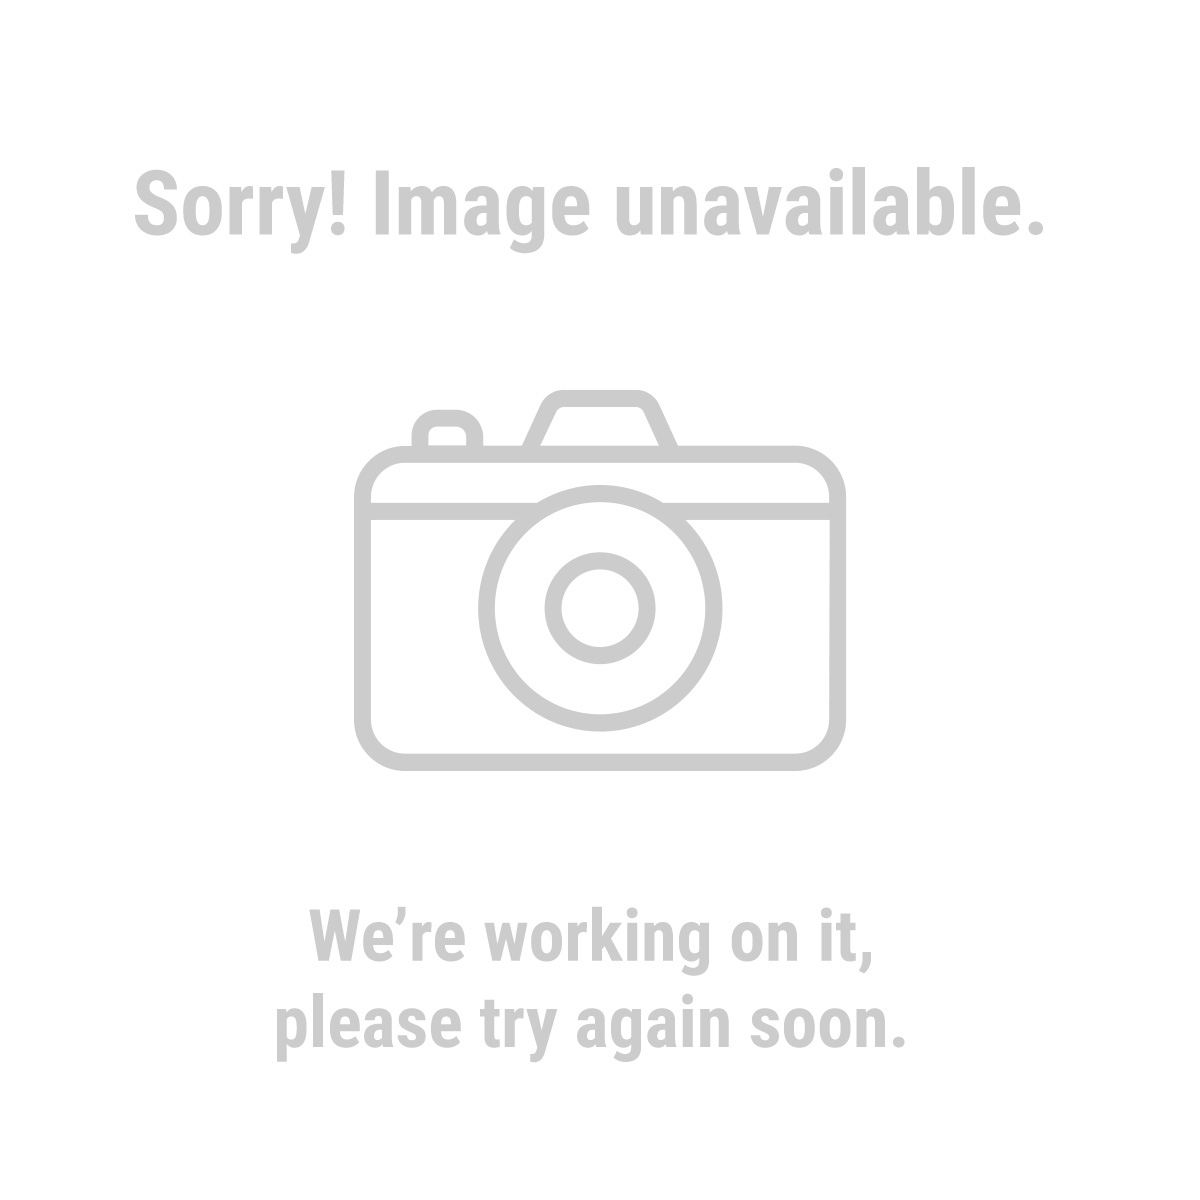 Greenwood 61769 3/4 in. x 50 ft. Commercial Duty Garden Hose